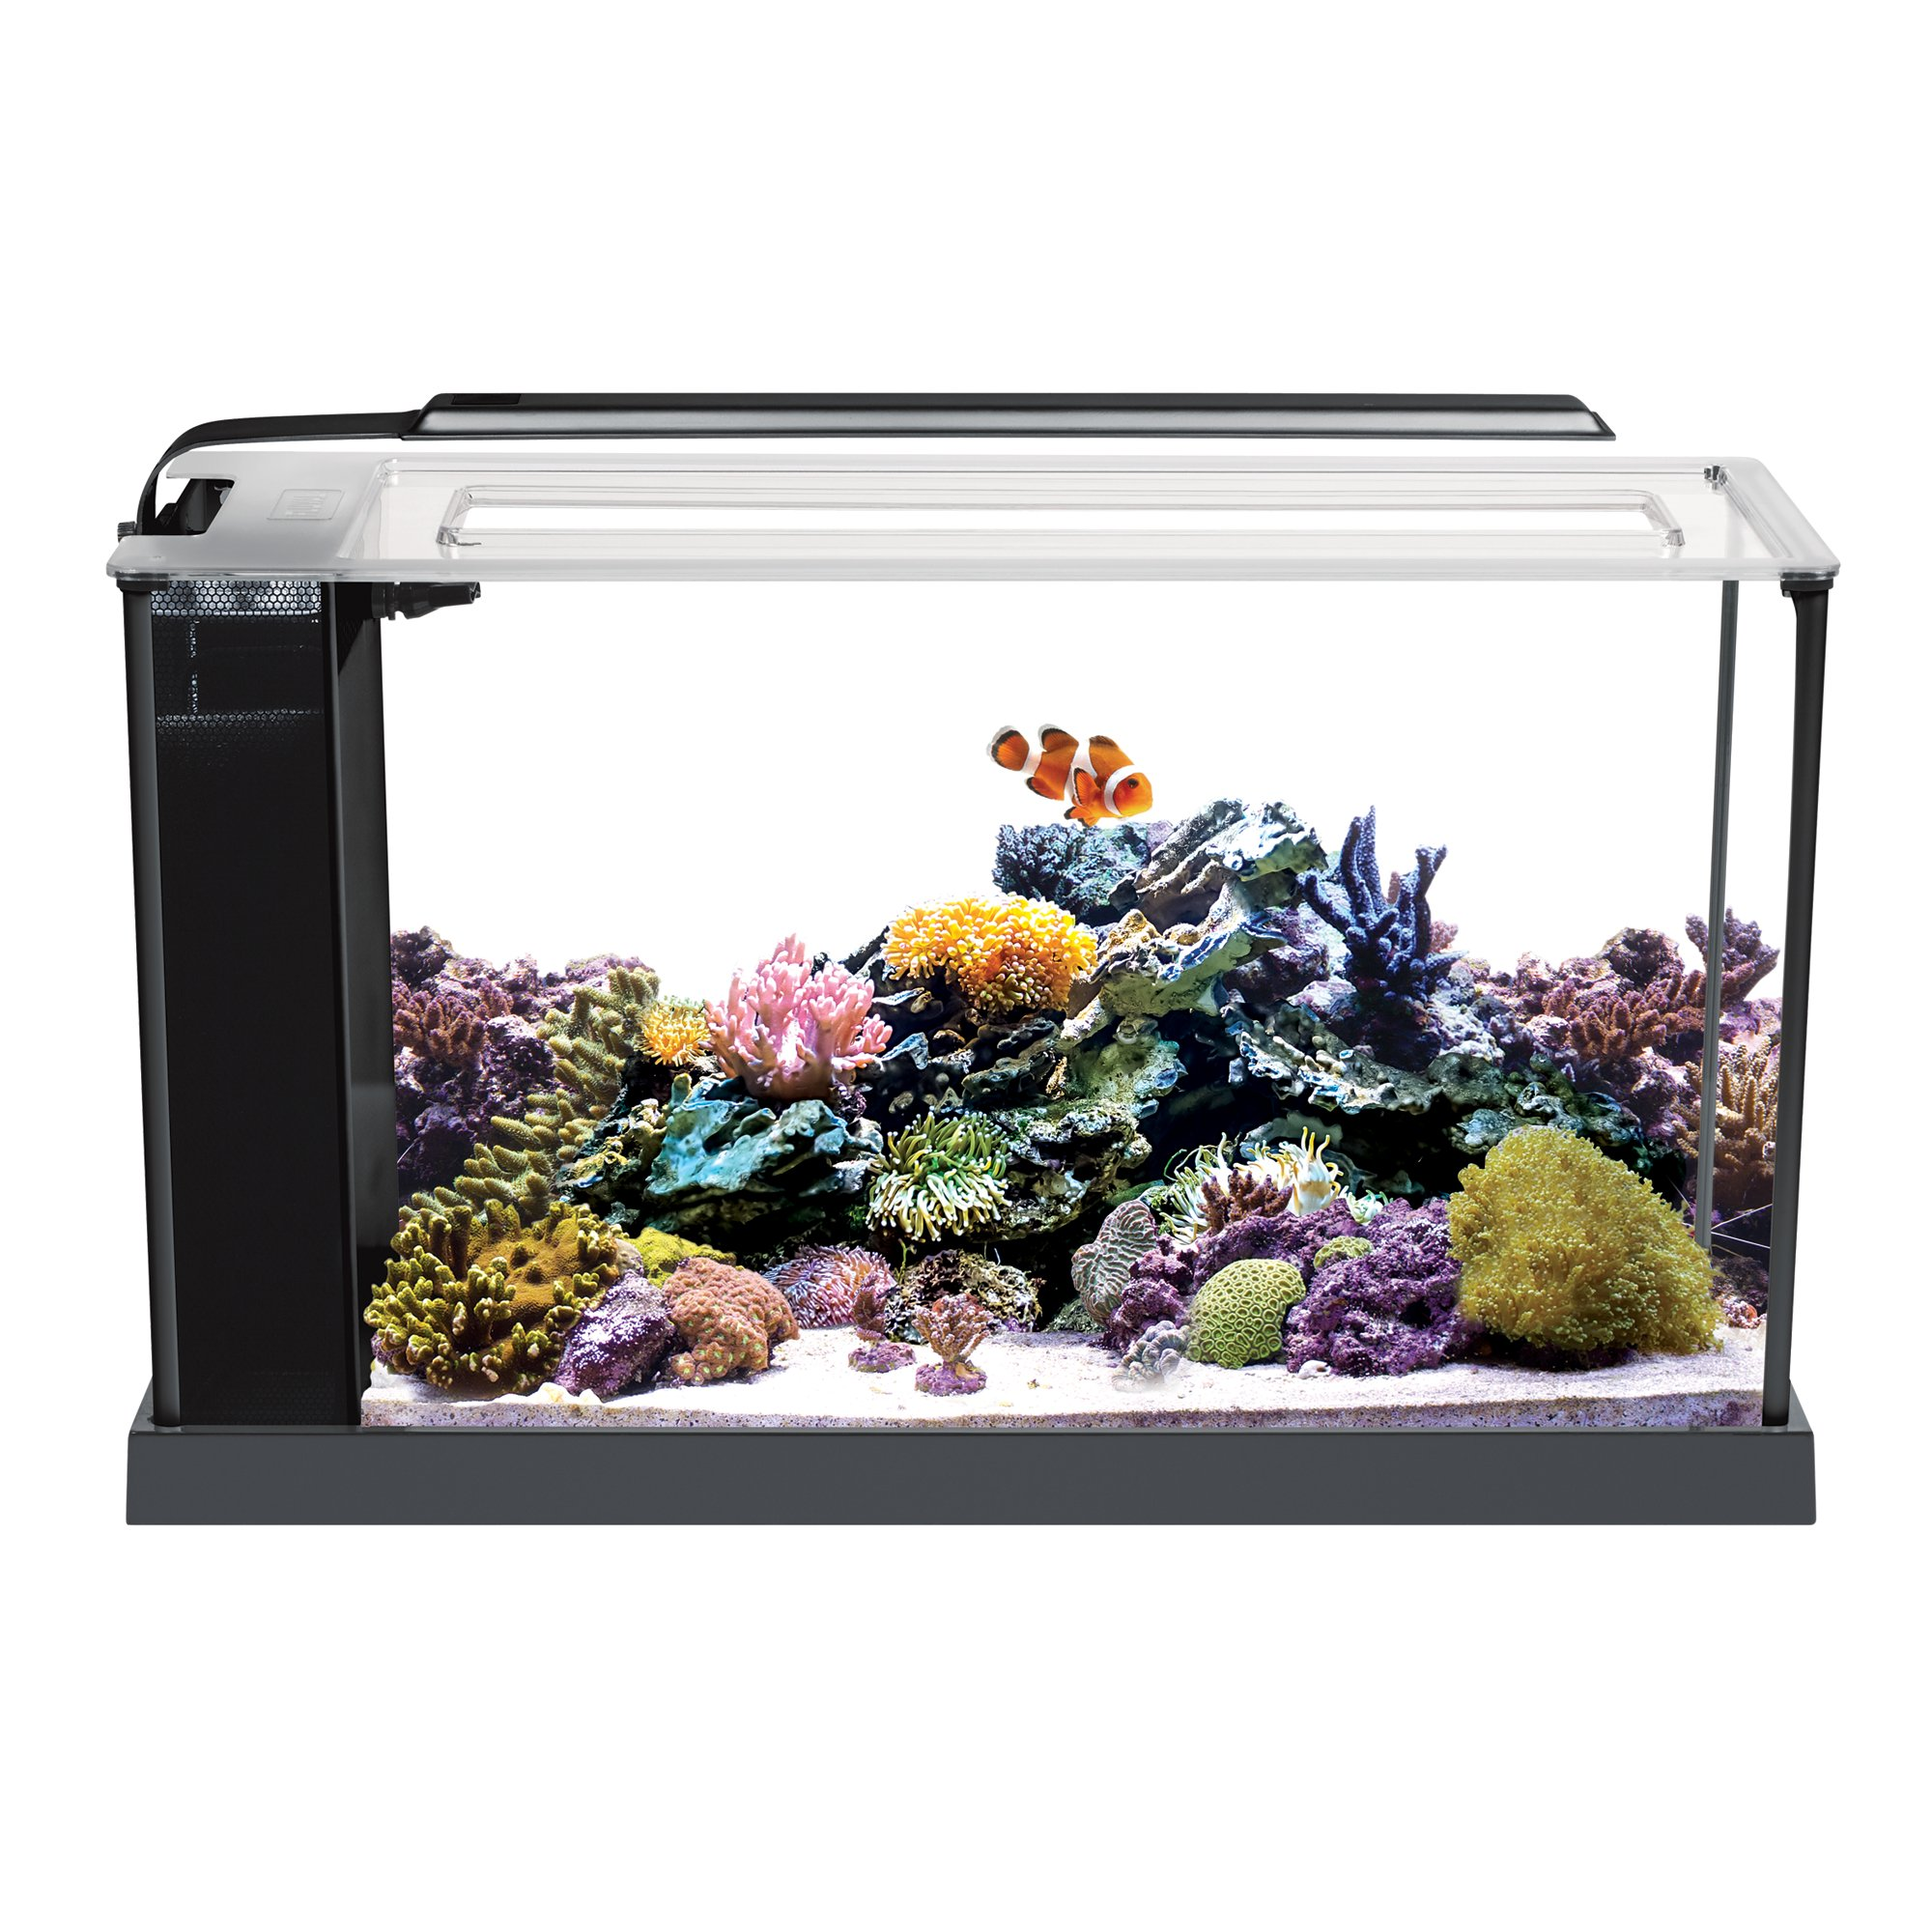 Fluval EVO V Marine Aquarium Kit